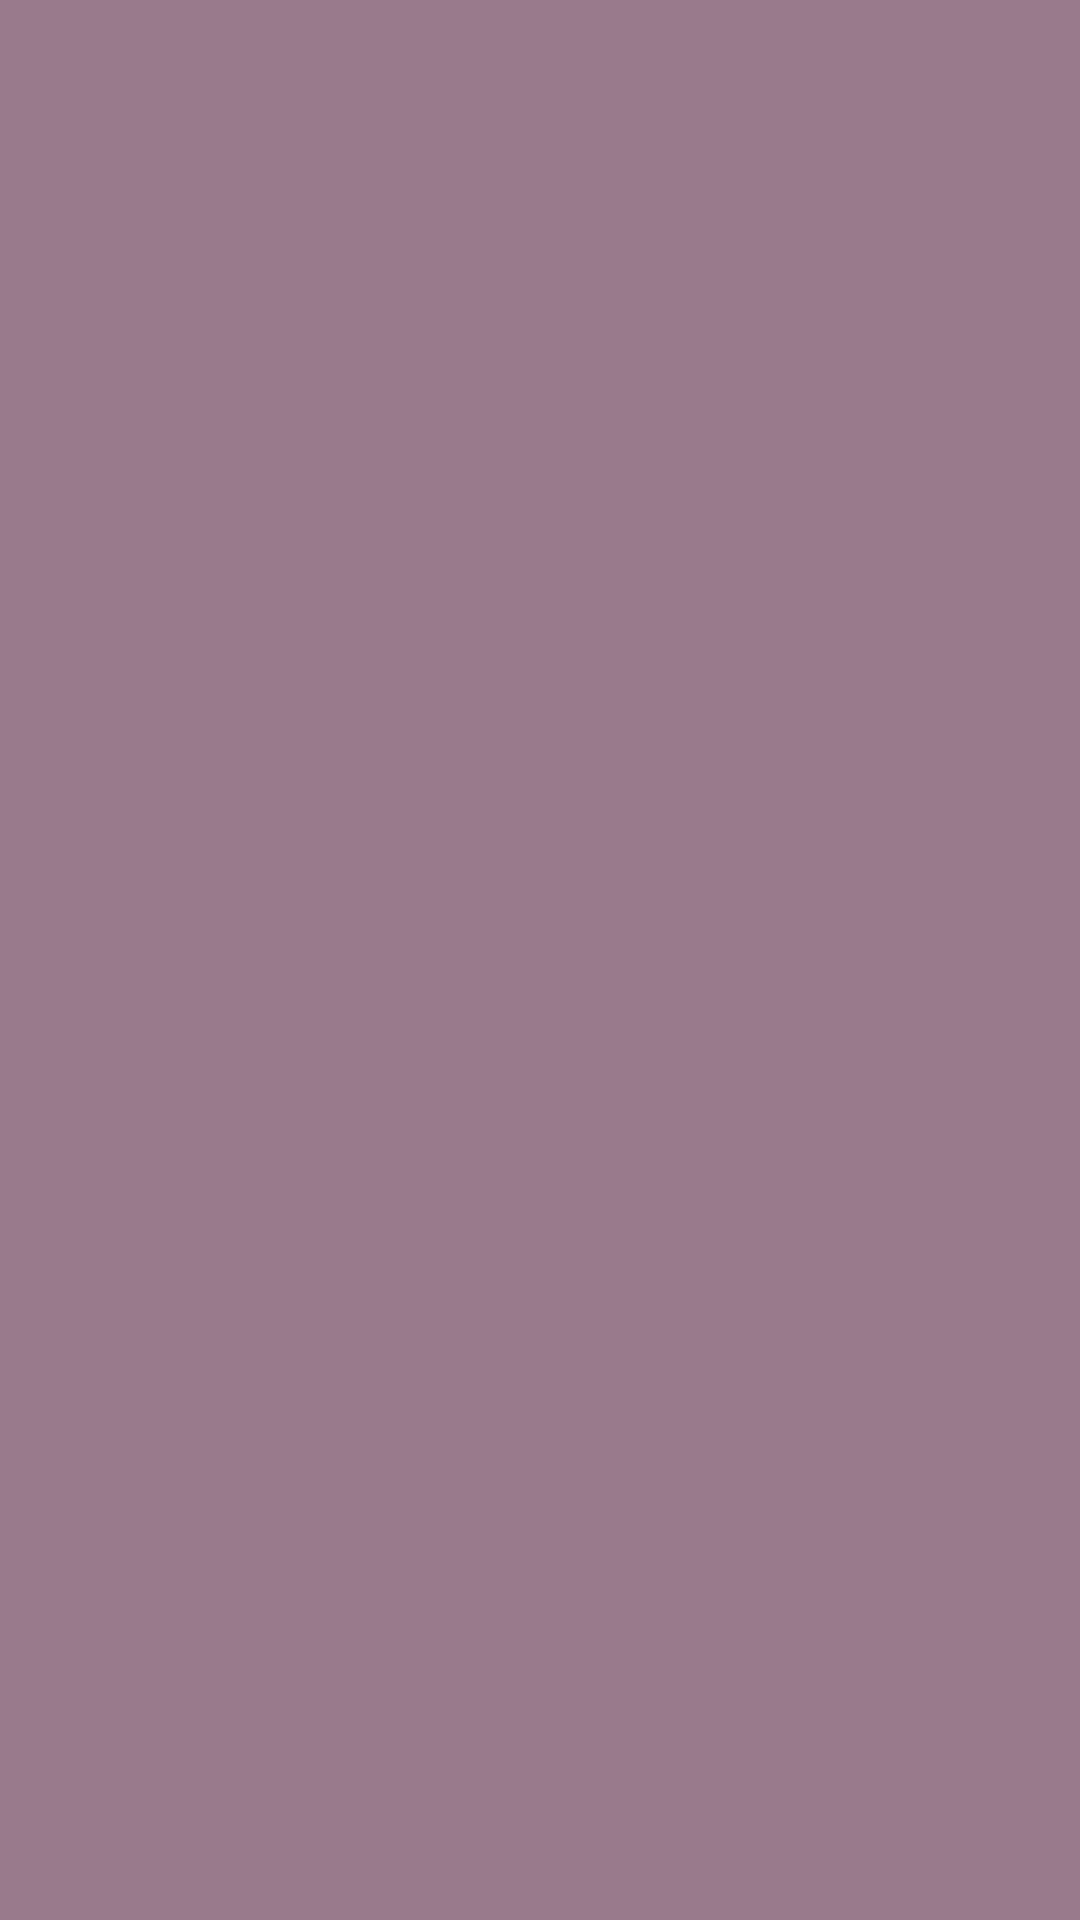 1080x1920 Mountbatten Pink Solid Color Background